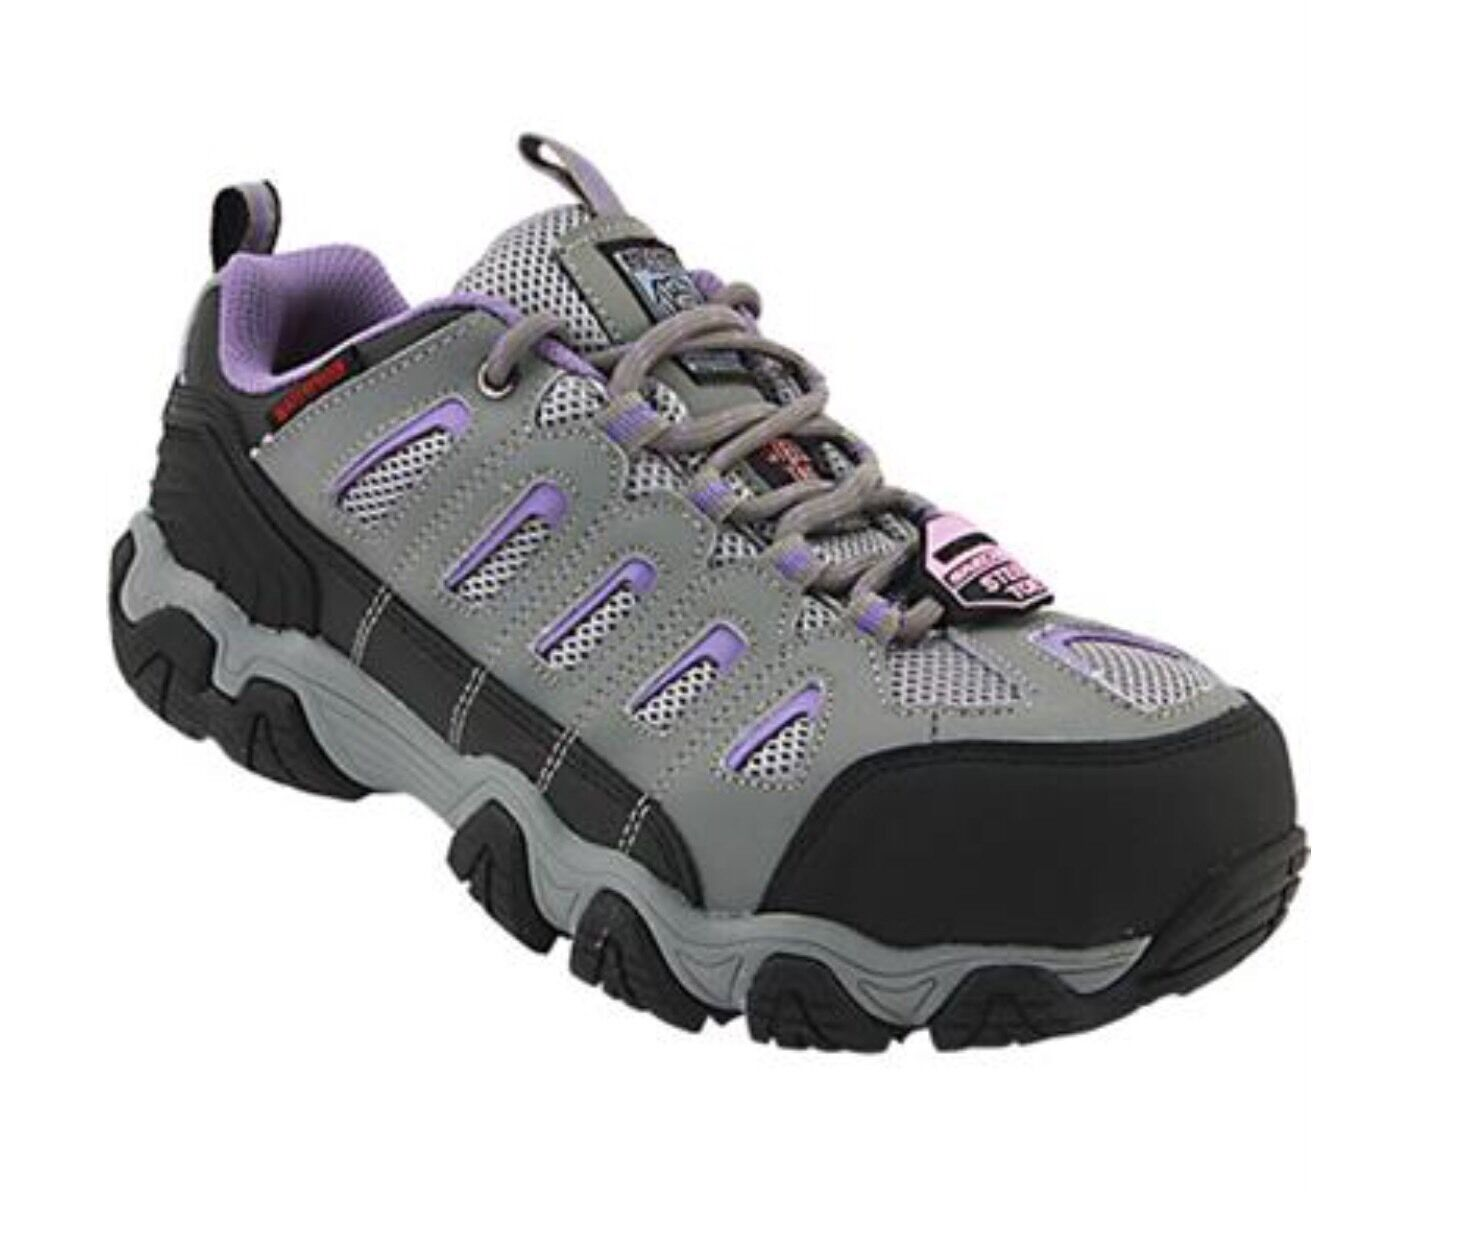 Skechers Steel Toe Work Shoes 76570 Grey & Purple Size 8 NEW